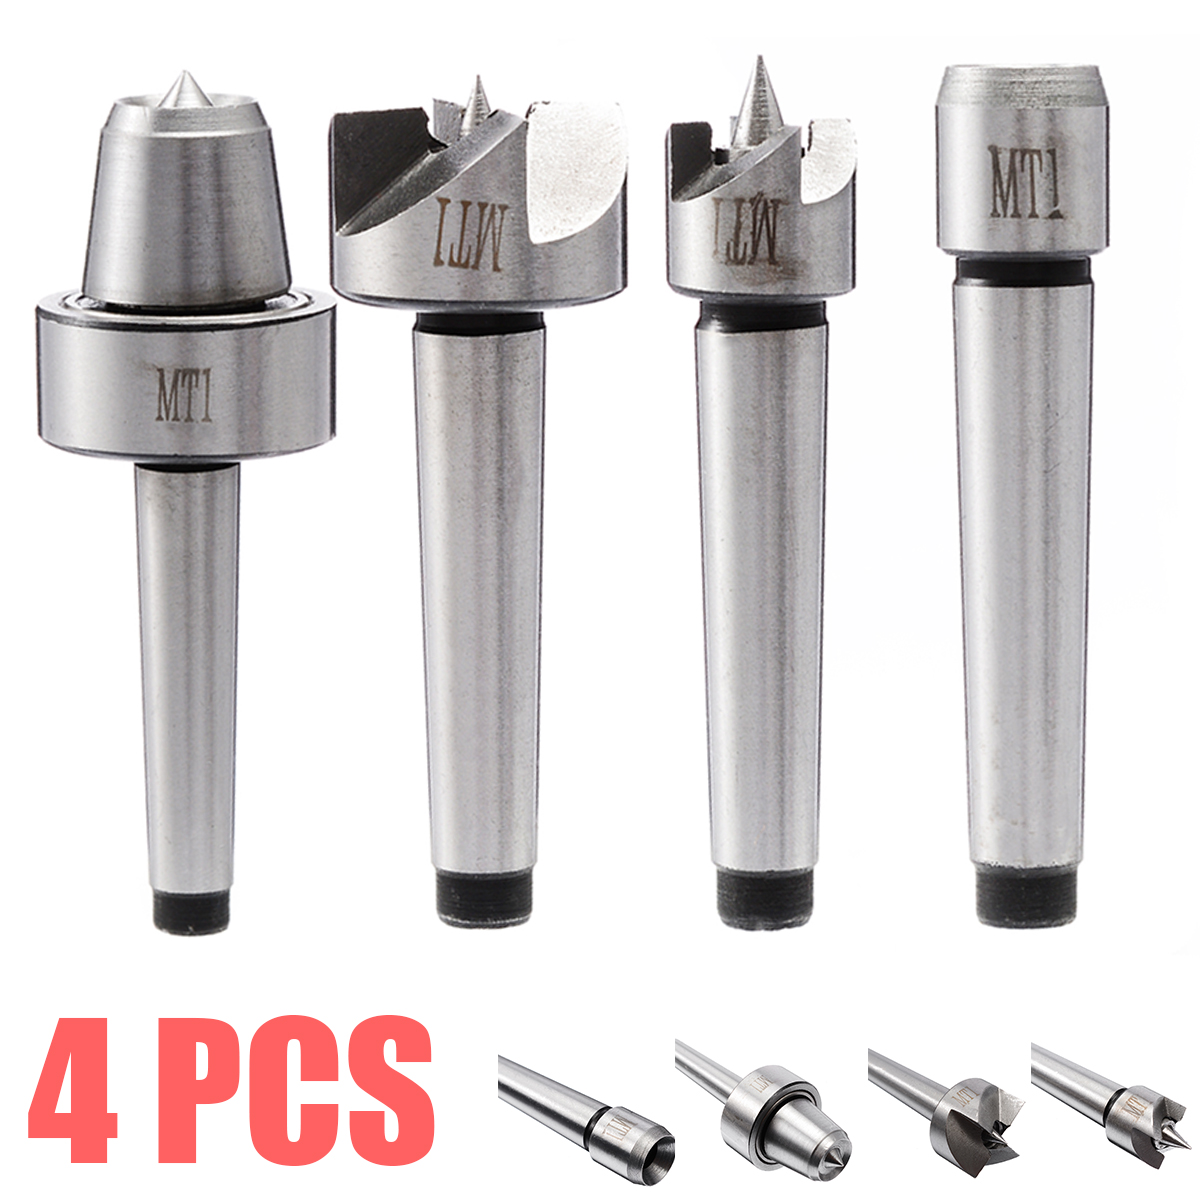 4Pcs/Set MT1 Lathe Center Set Durable MT1 Wood Lathe Live Center And Drive Spur Cup Arbor For  Wood And Metalworking Tool